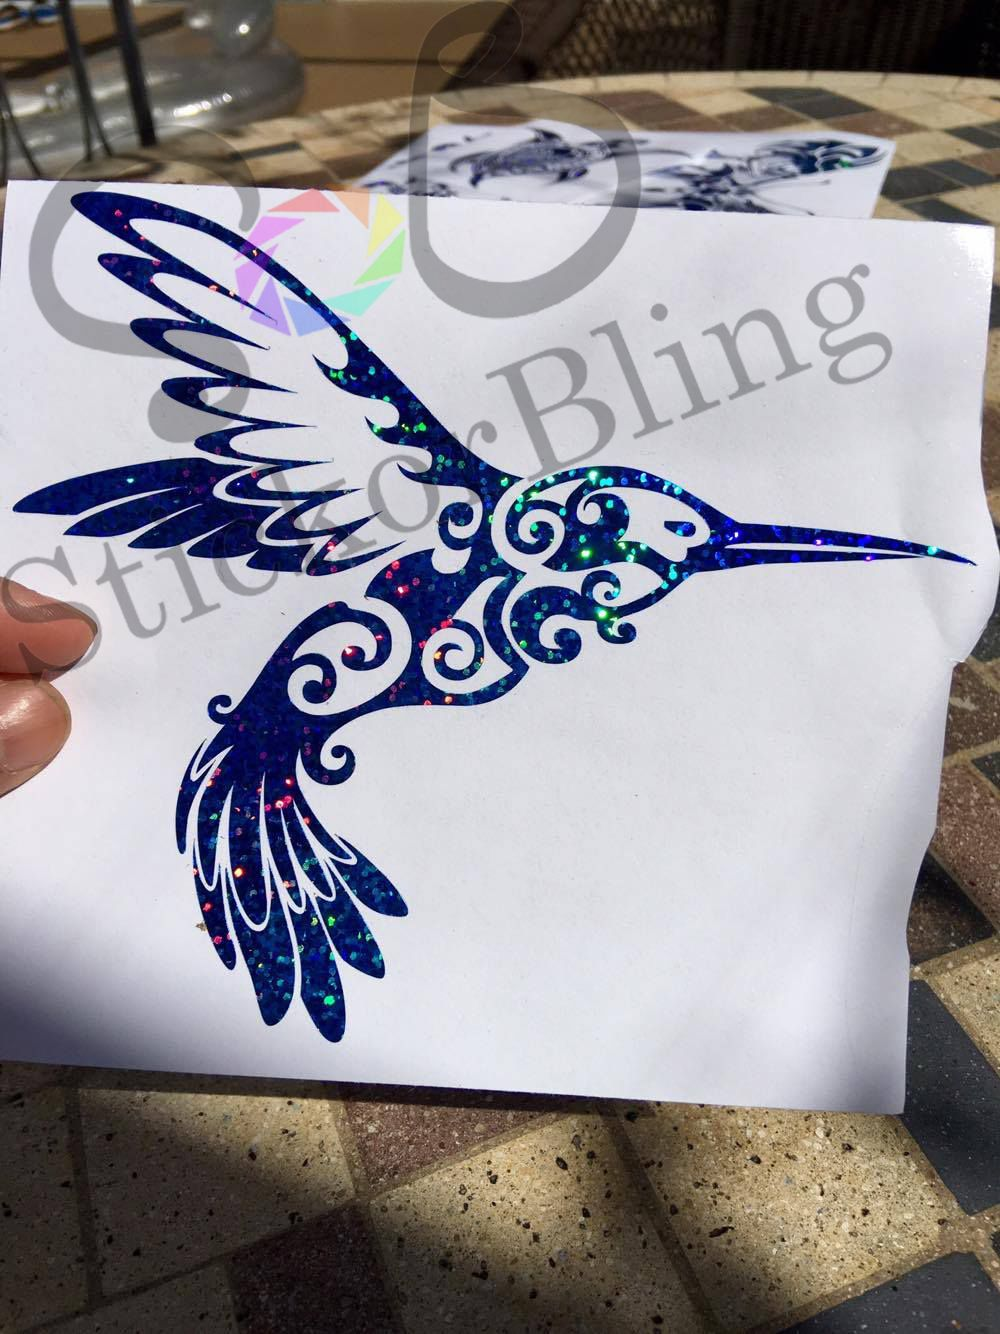 Humming Bird Tribal Silver Glitter Holographic Vinyl Decal Sticker - Vinyl decals cartribal hearts decal vinylgraphichood car hoods decals and